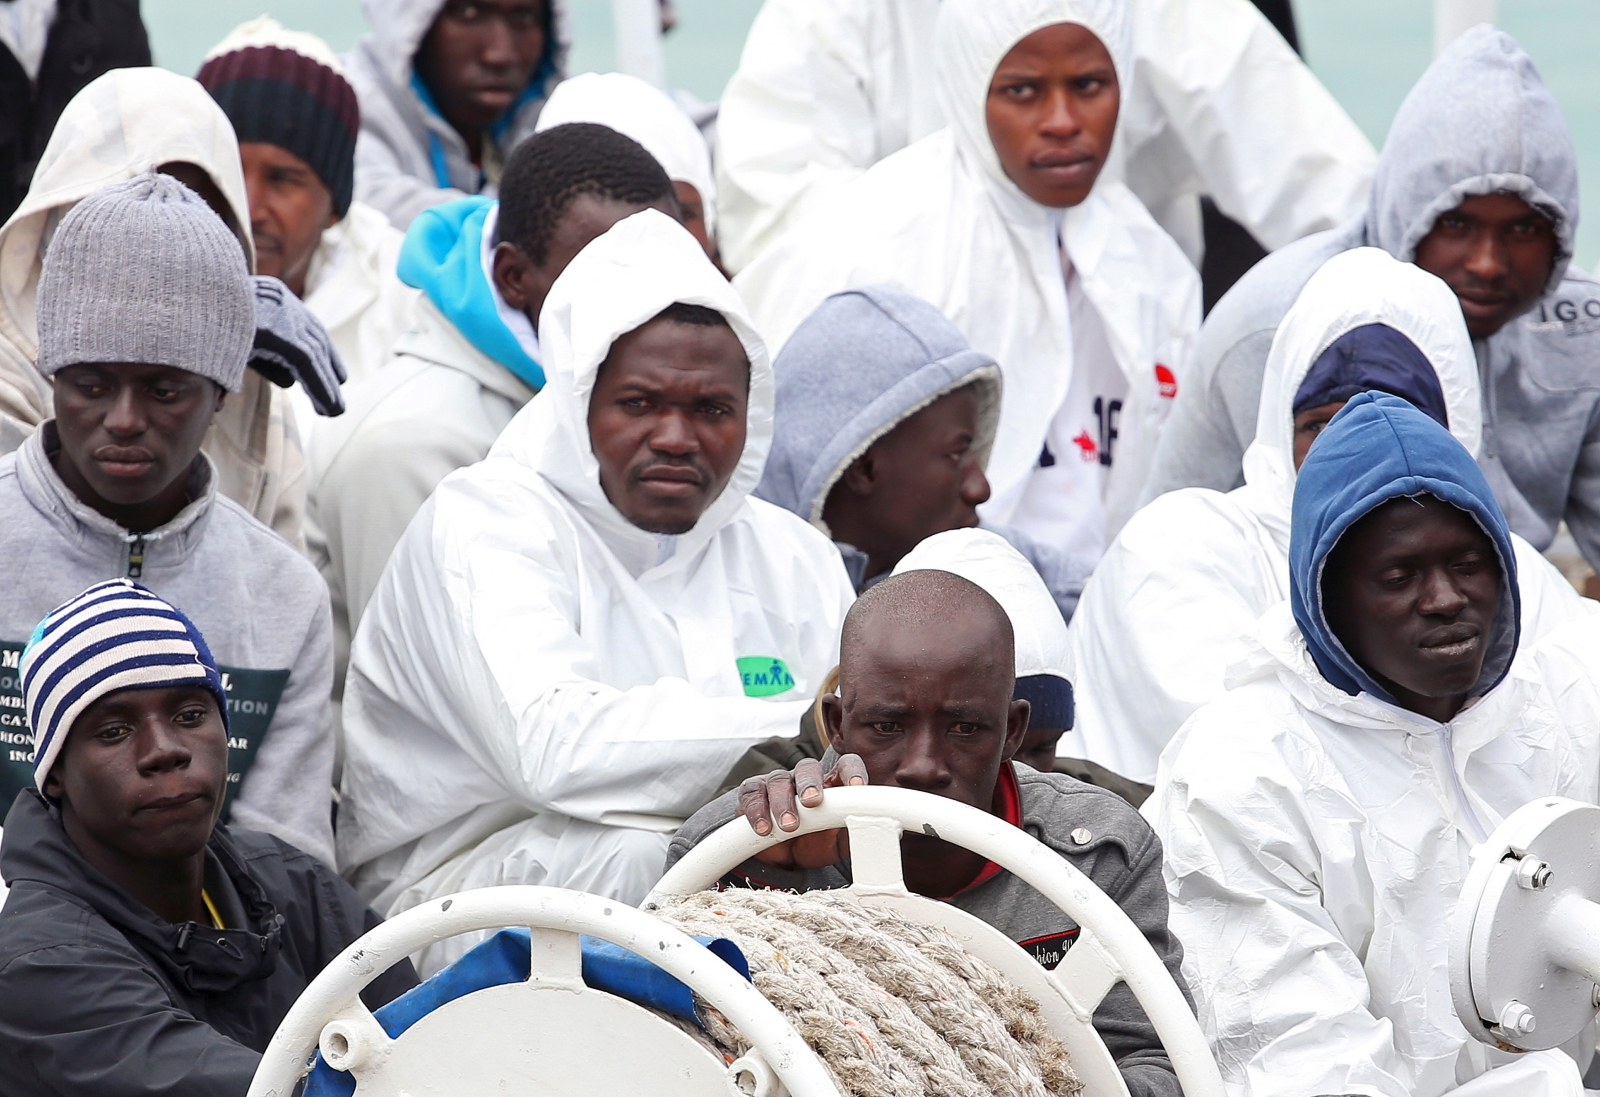 Migrants wait to disembark in Catania